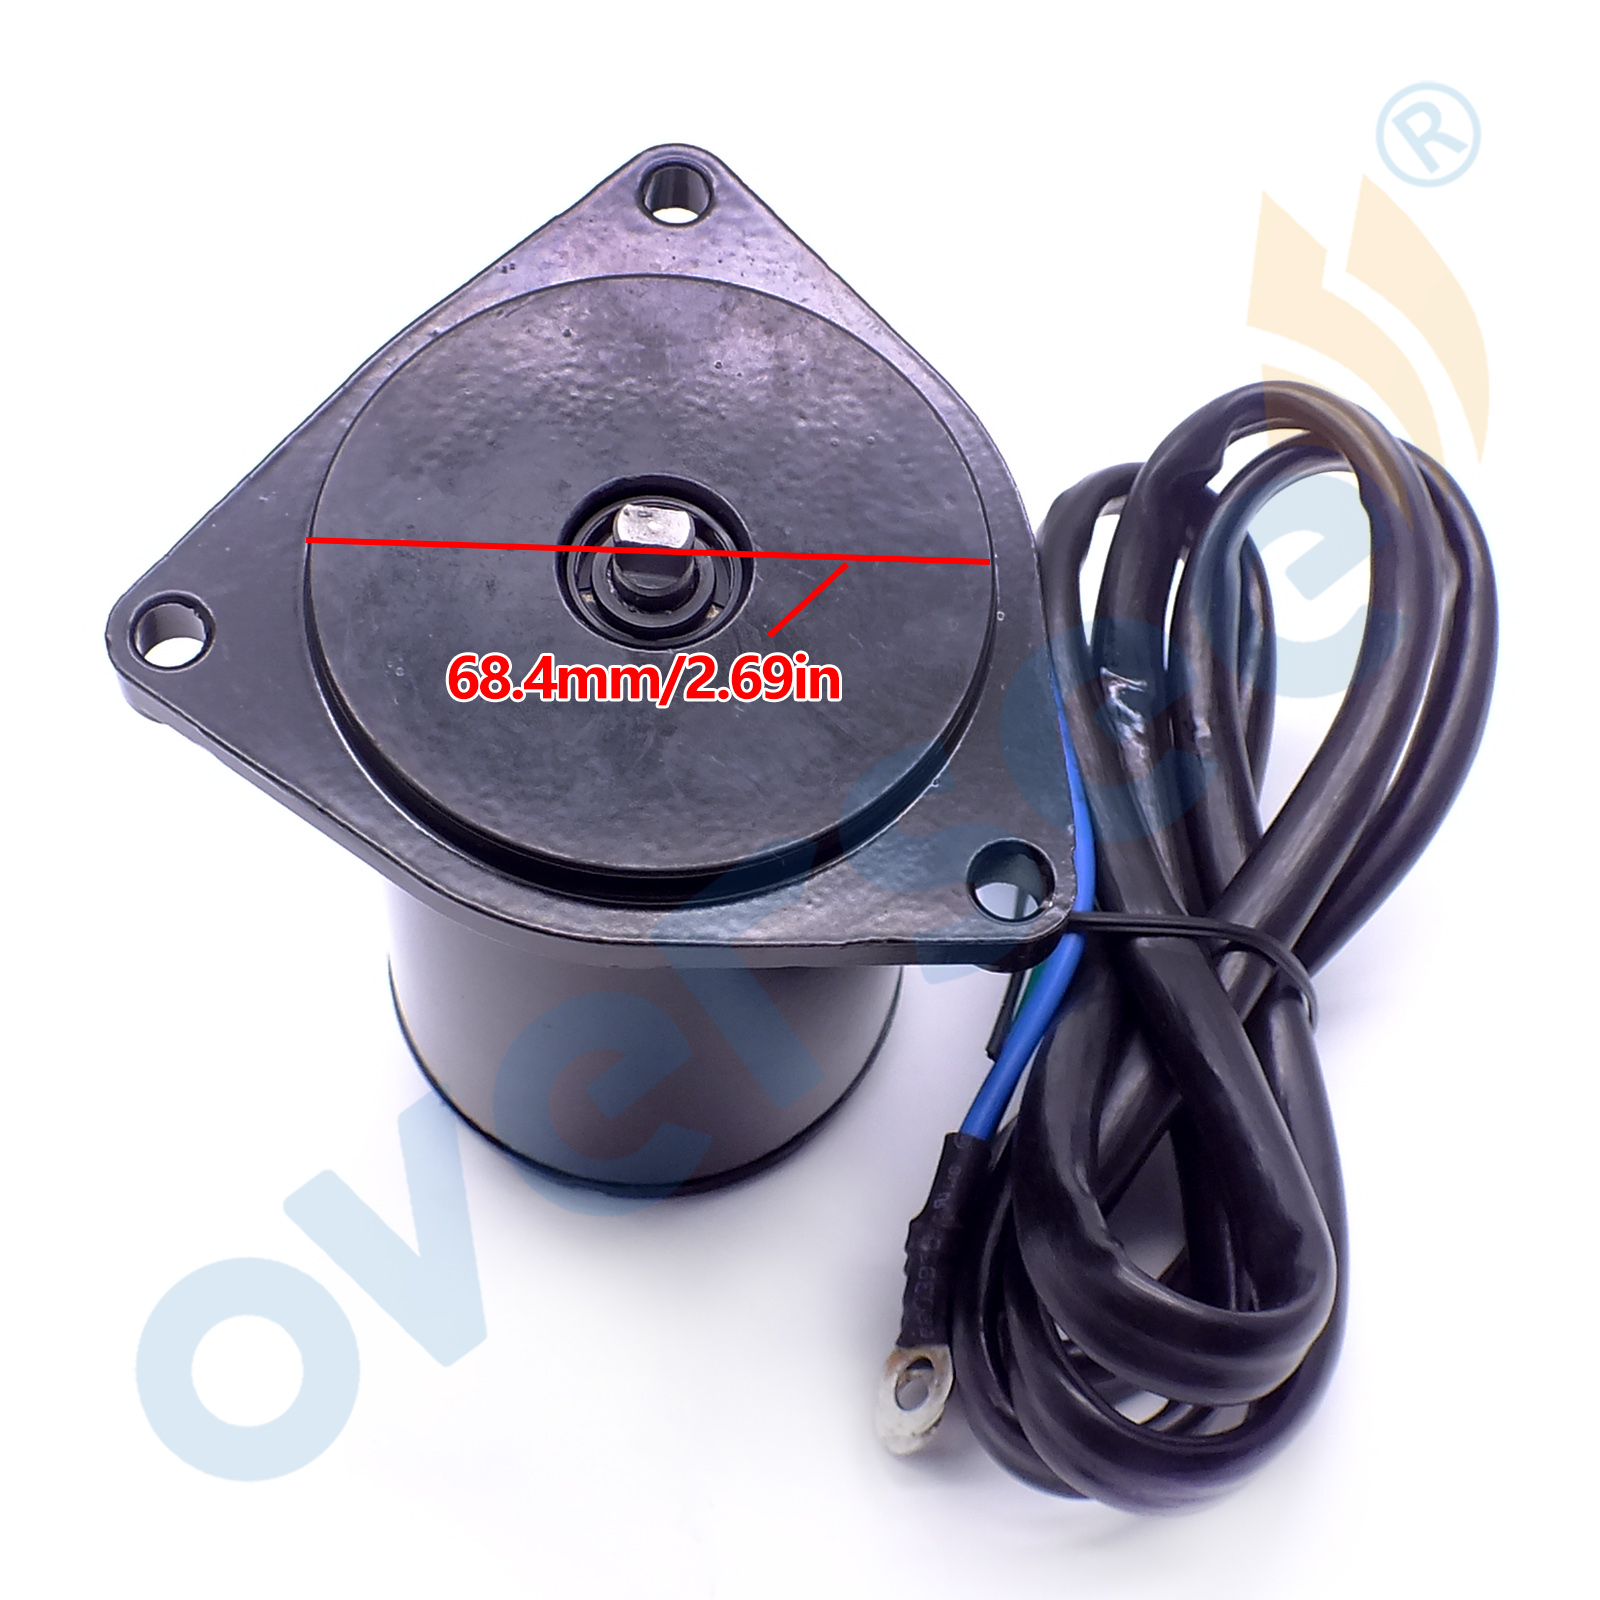 small resolution of 6h1 43880 powertilt trim motor for yamaha outboard motor 50hp 55hp 60hp 70hp 85hp 90hp 6h1 43880 02 430 22028 in boat engine from automobiles motorcycles